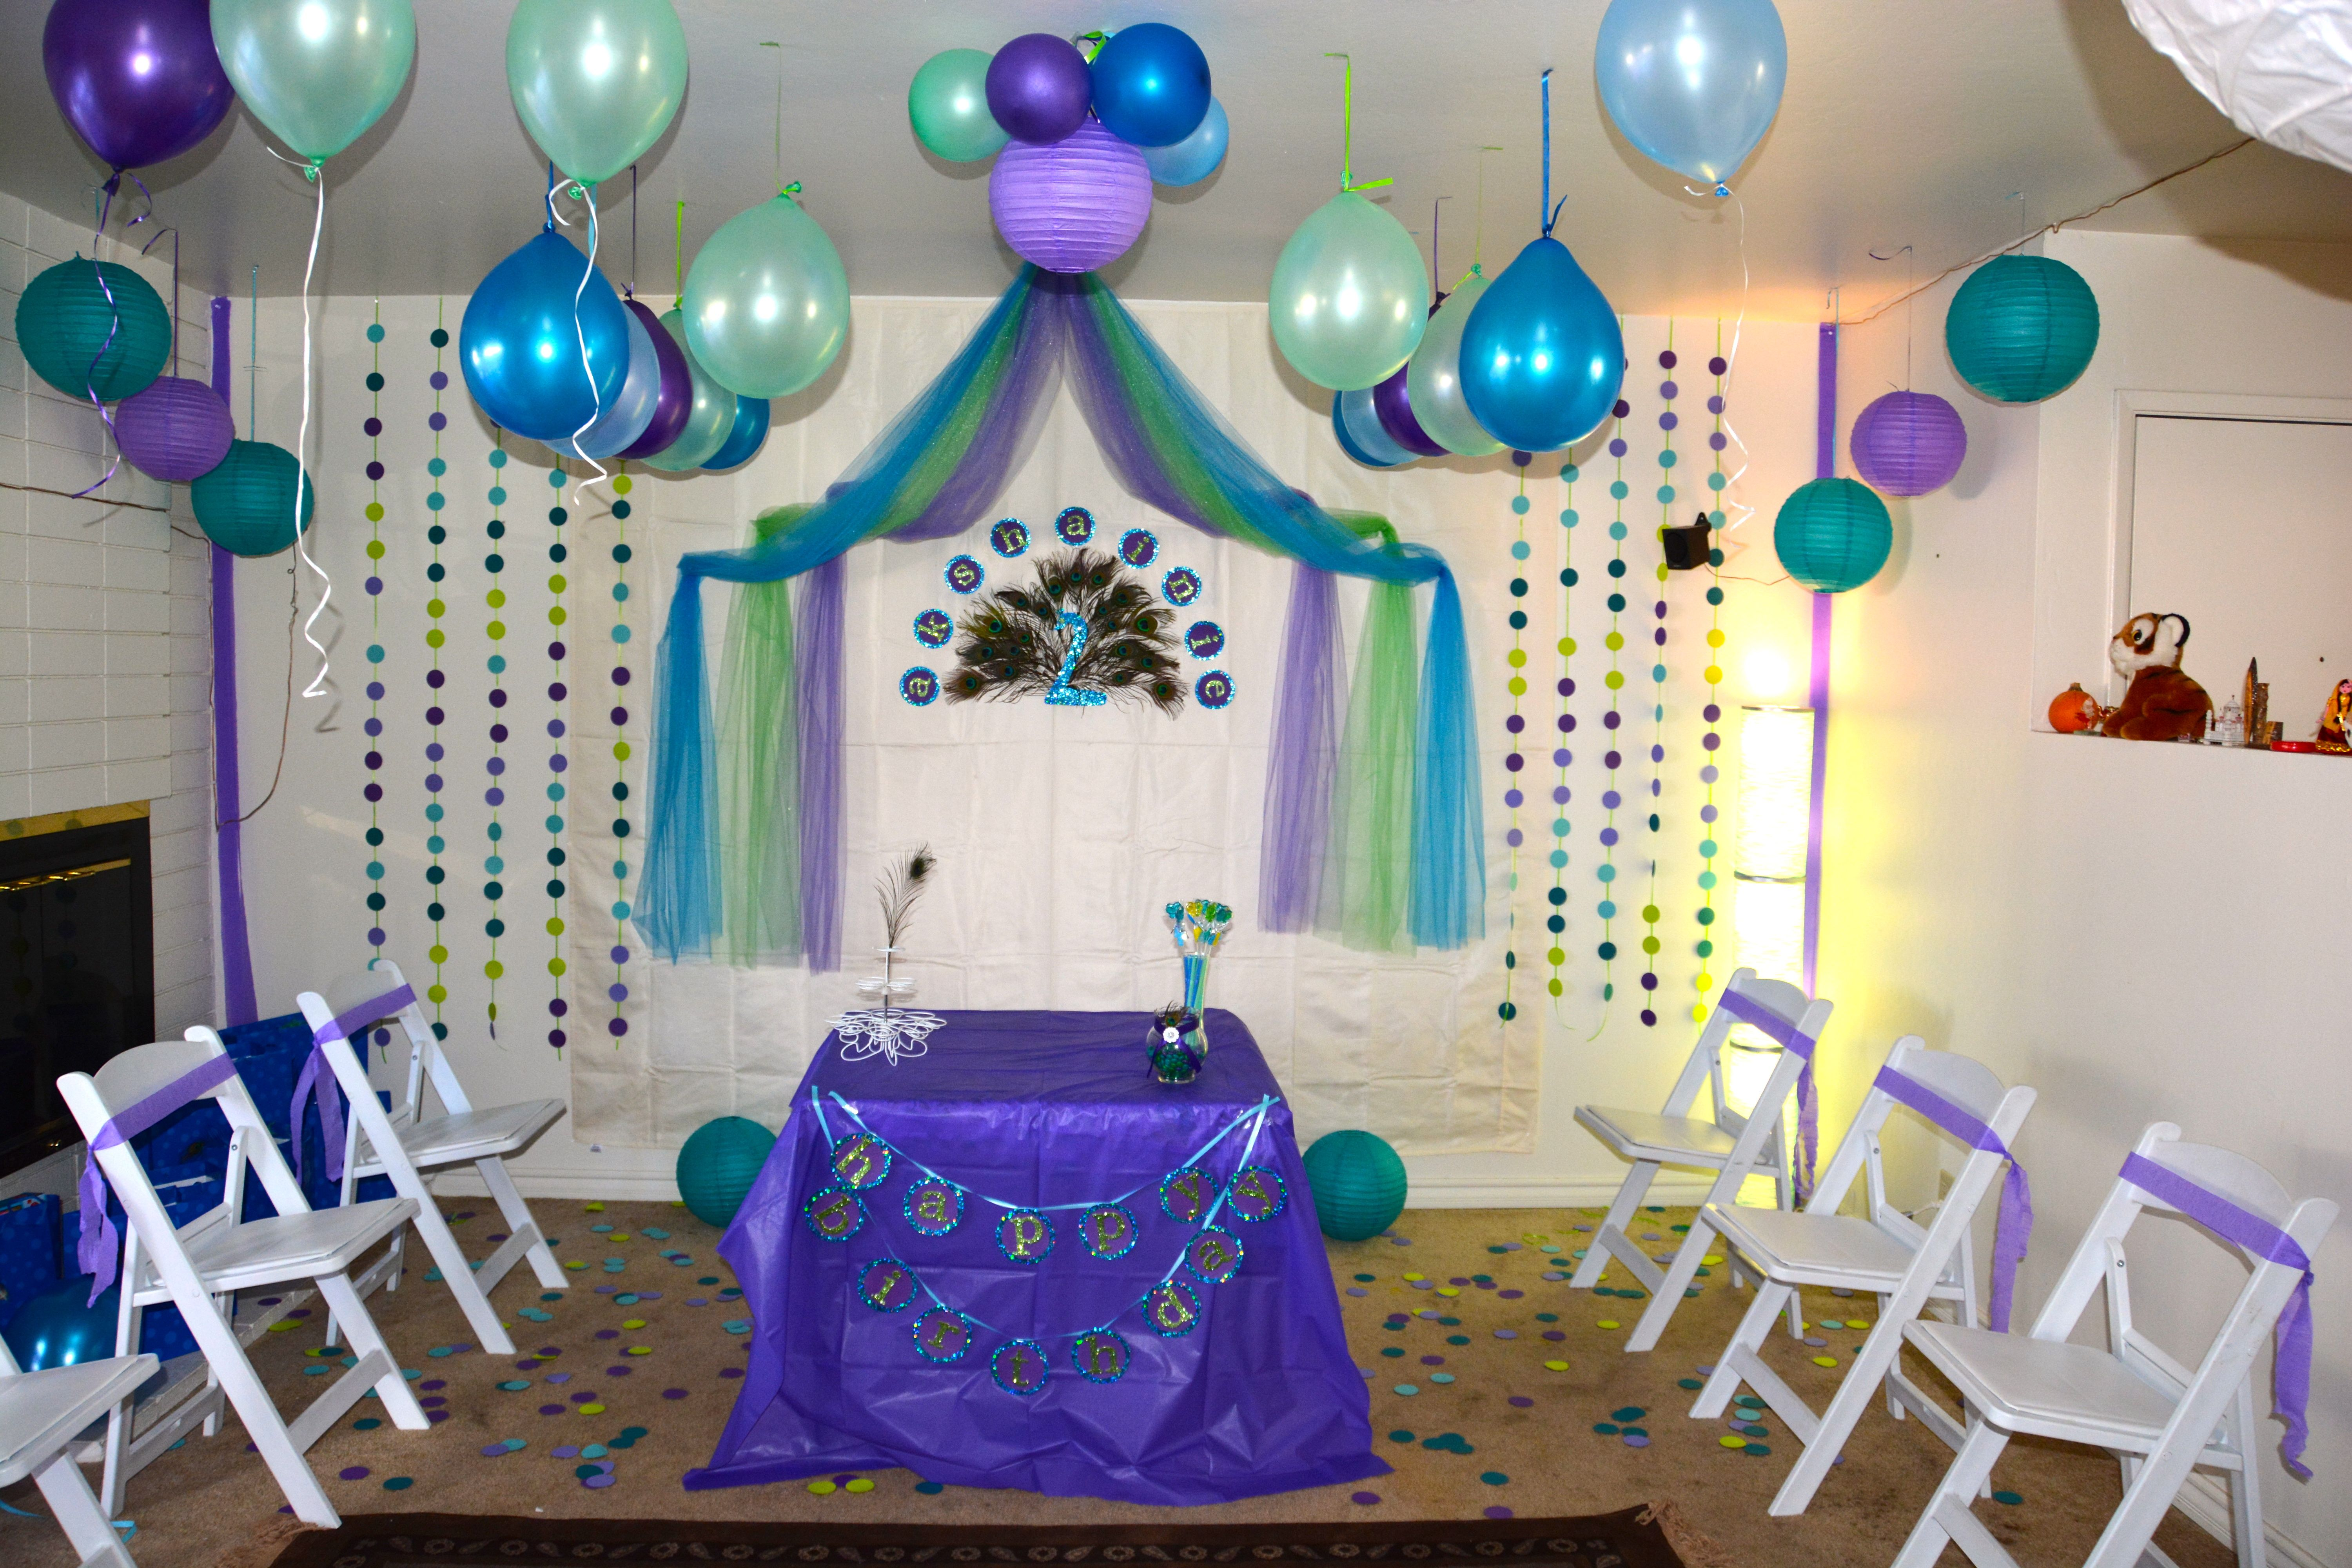 Peacock birthday theme party ideas pinterest - S party theme decorations ...